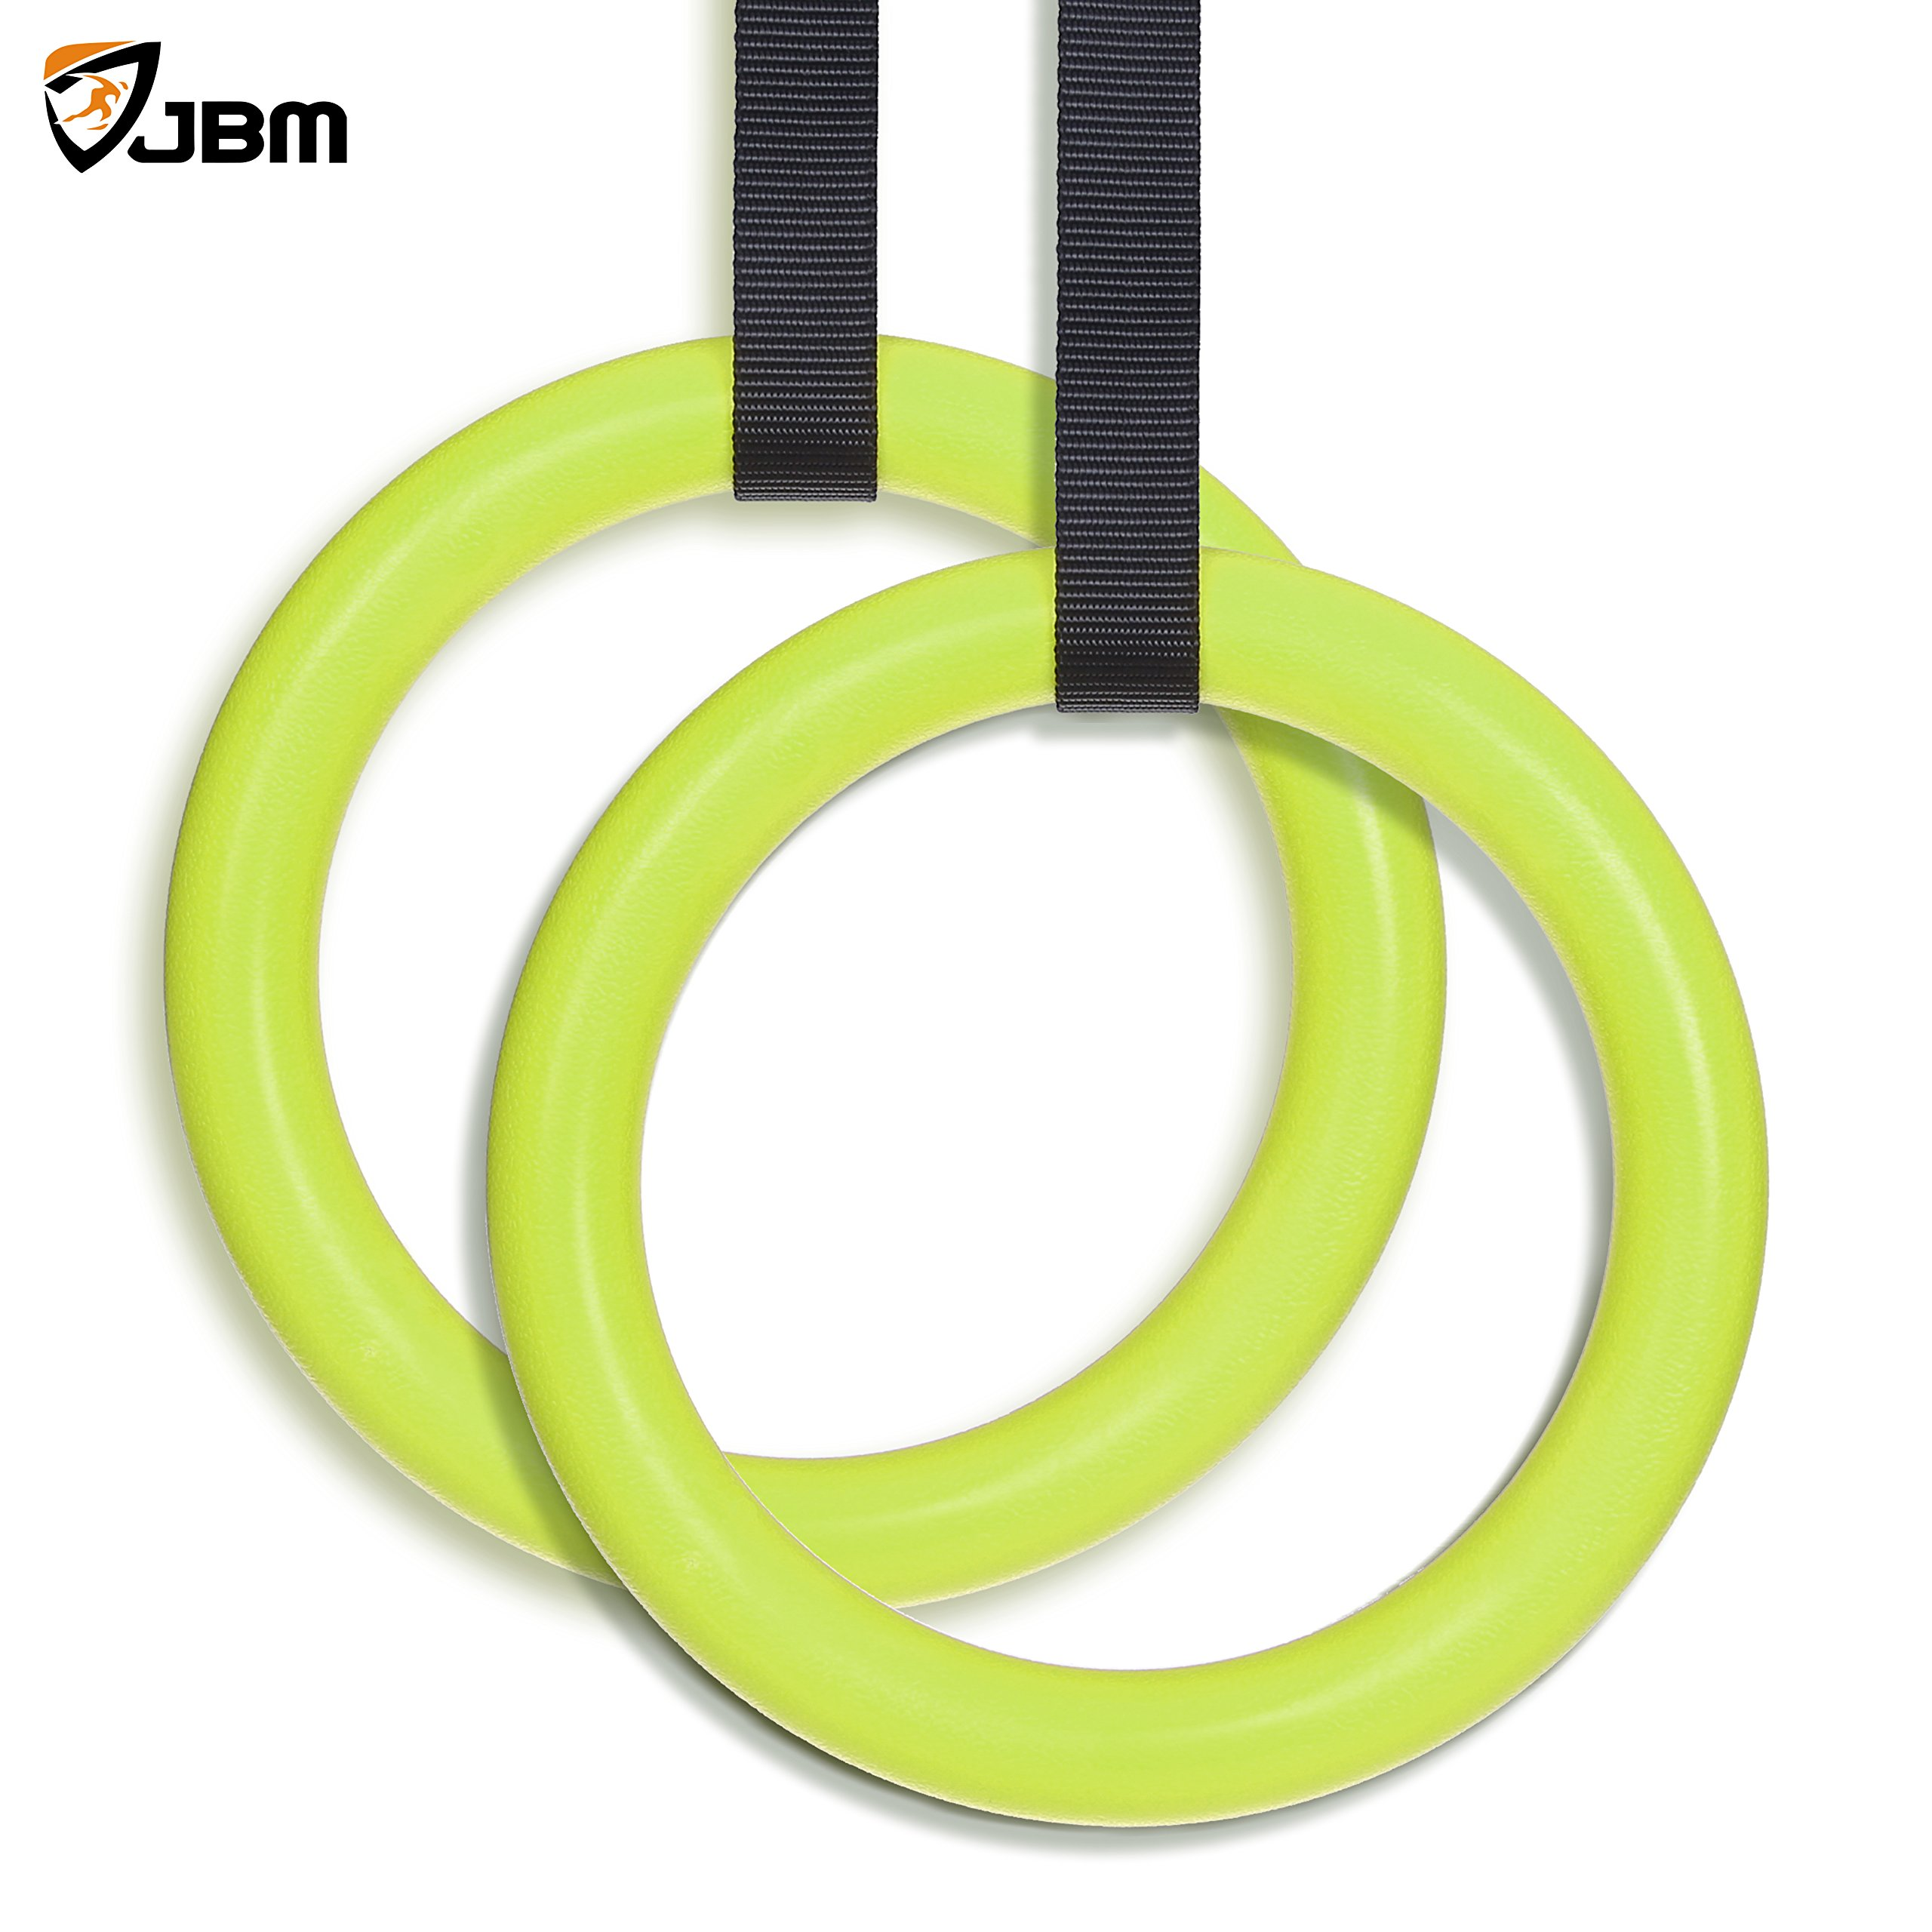 gymnastics amazon rated best exercise pcr duty fitness premium customer helpful gymnastic wood rings reviews training cross com in heavy